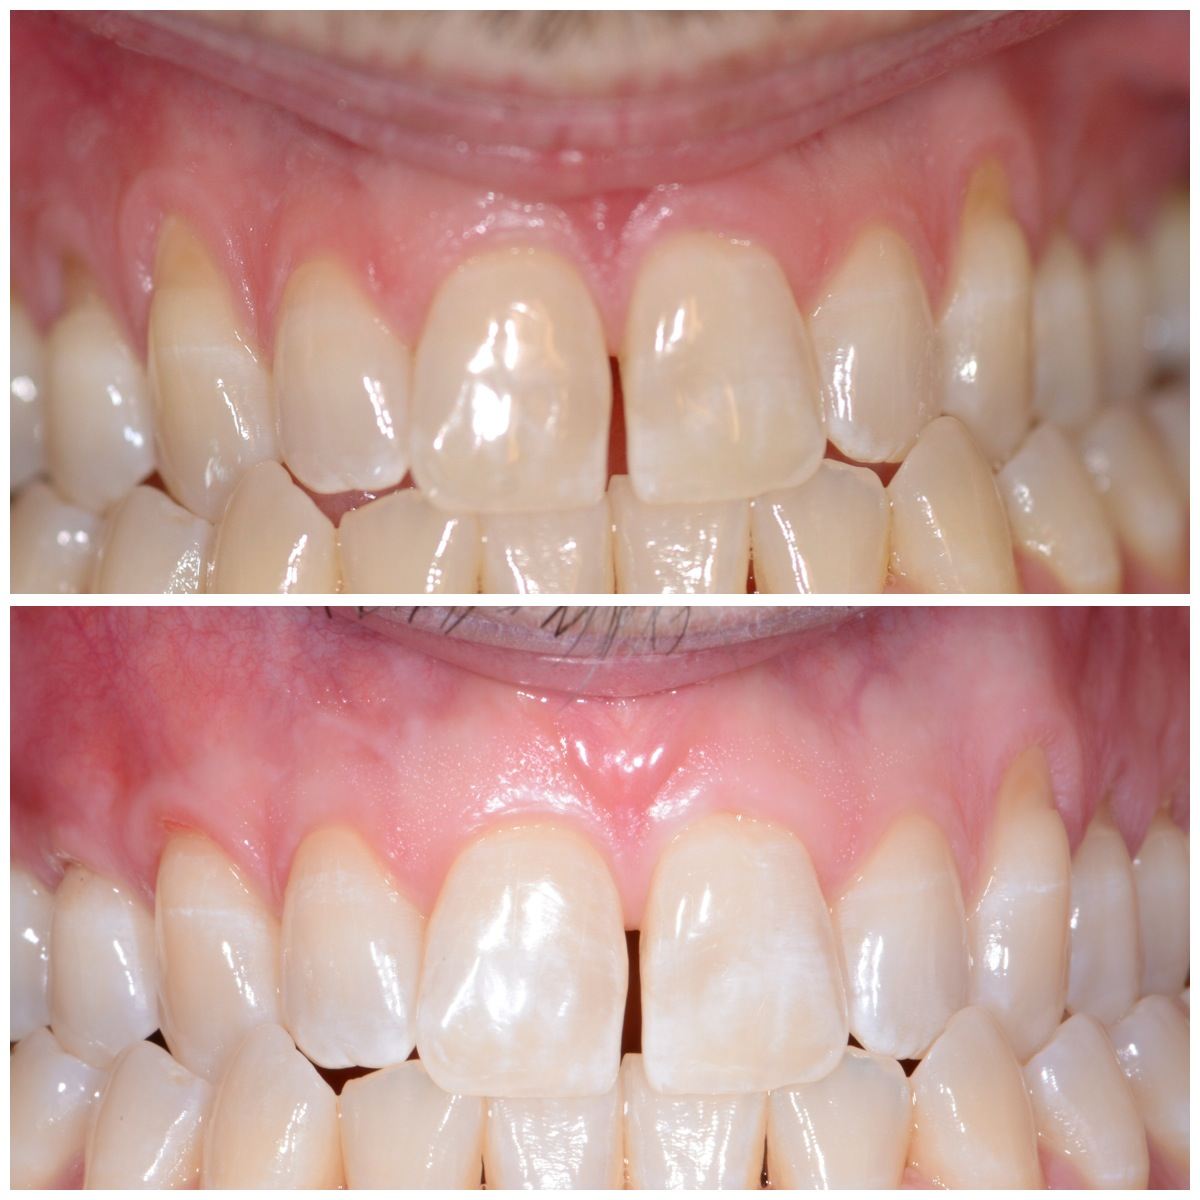 Gum Recession - Before and After Procedure performed by demė's Dr. Thomas George at demė